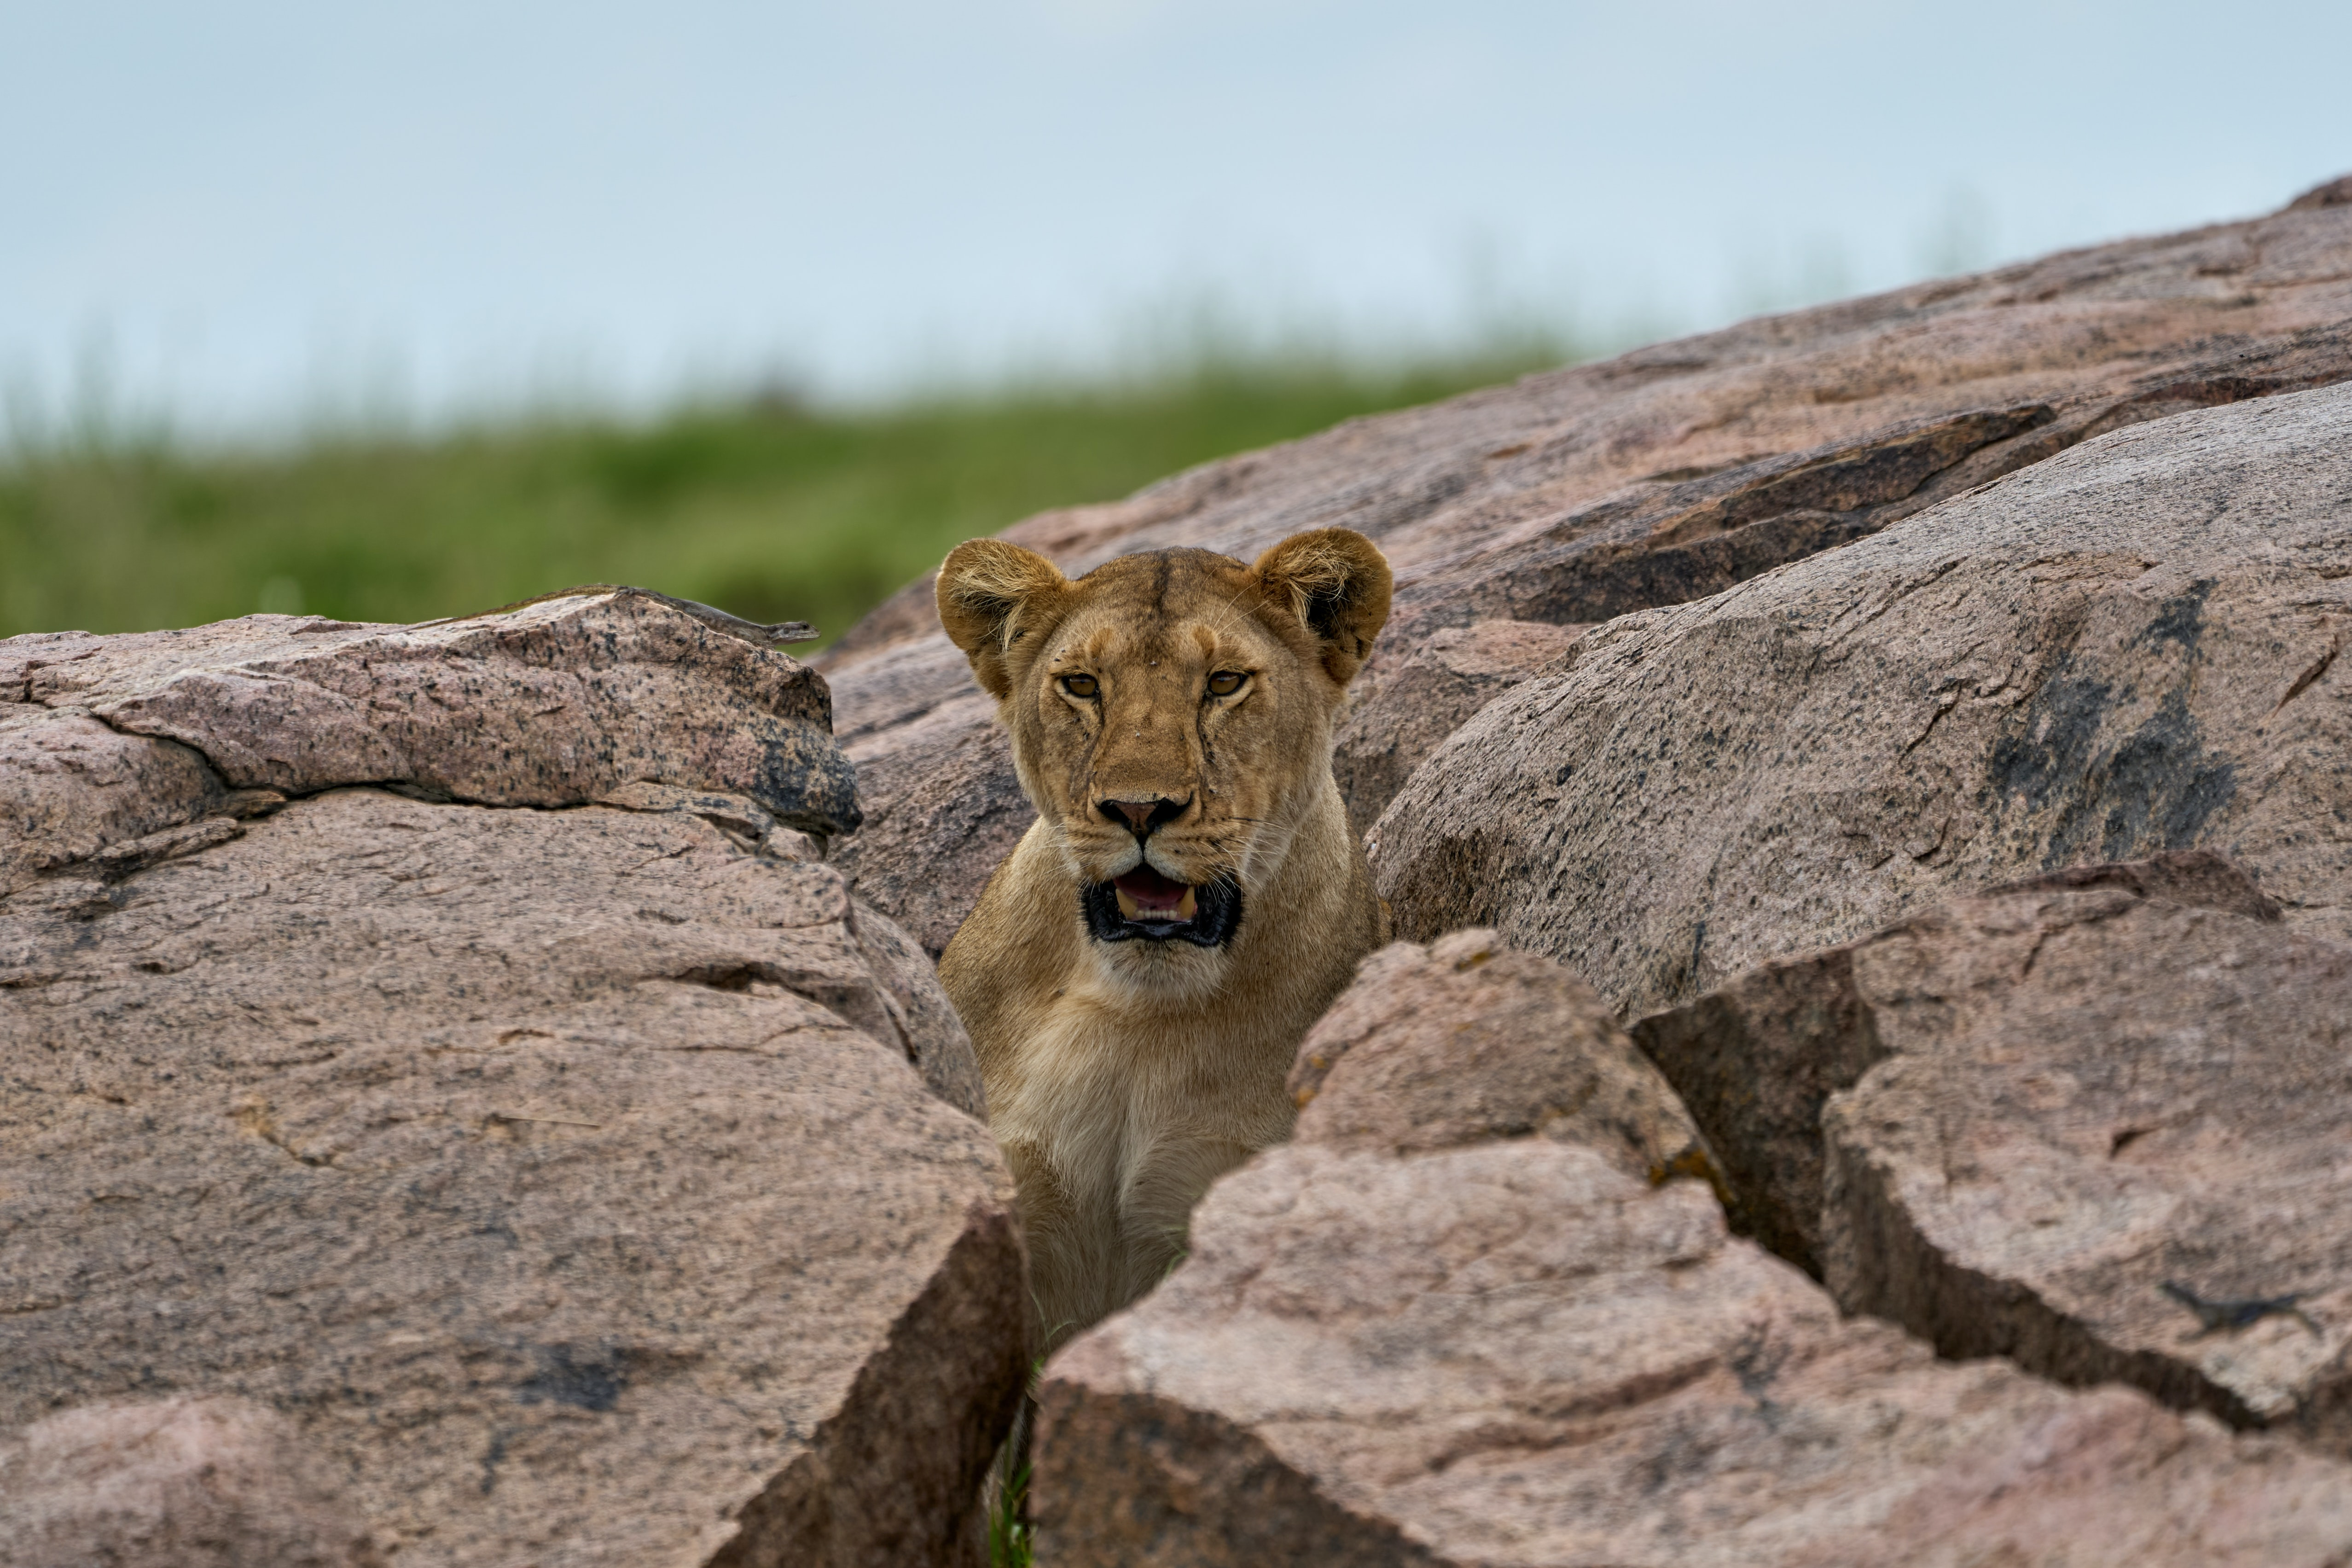 118569 download wallpaper Animals, Lioness, Predator, Stones, Wildlife screensavers and pictures for free